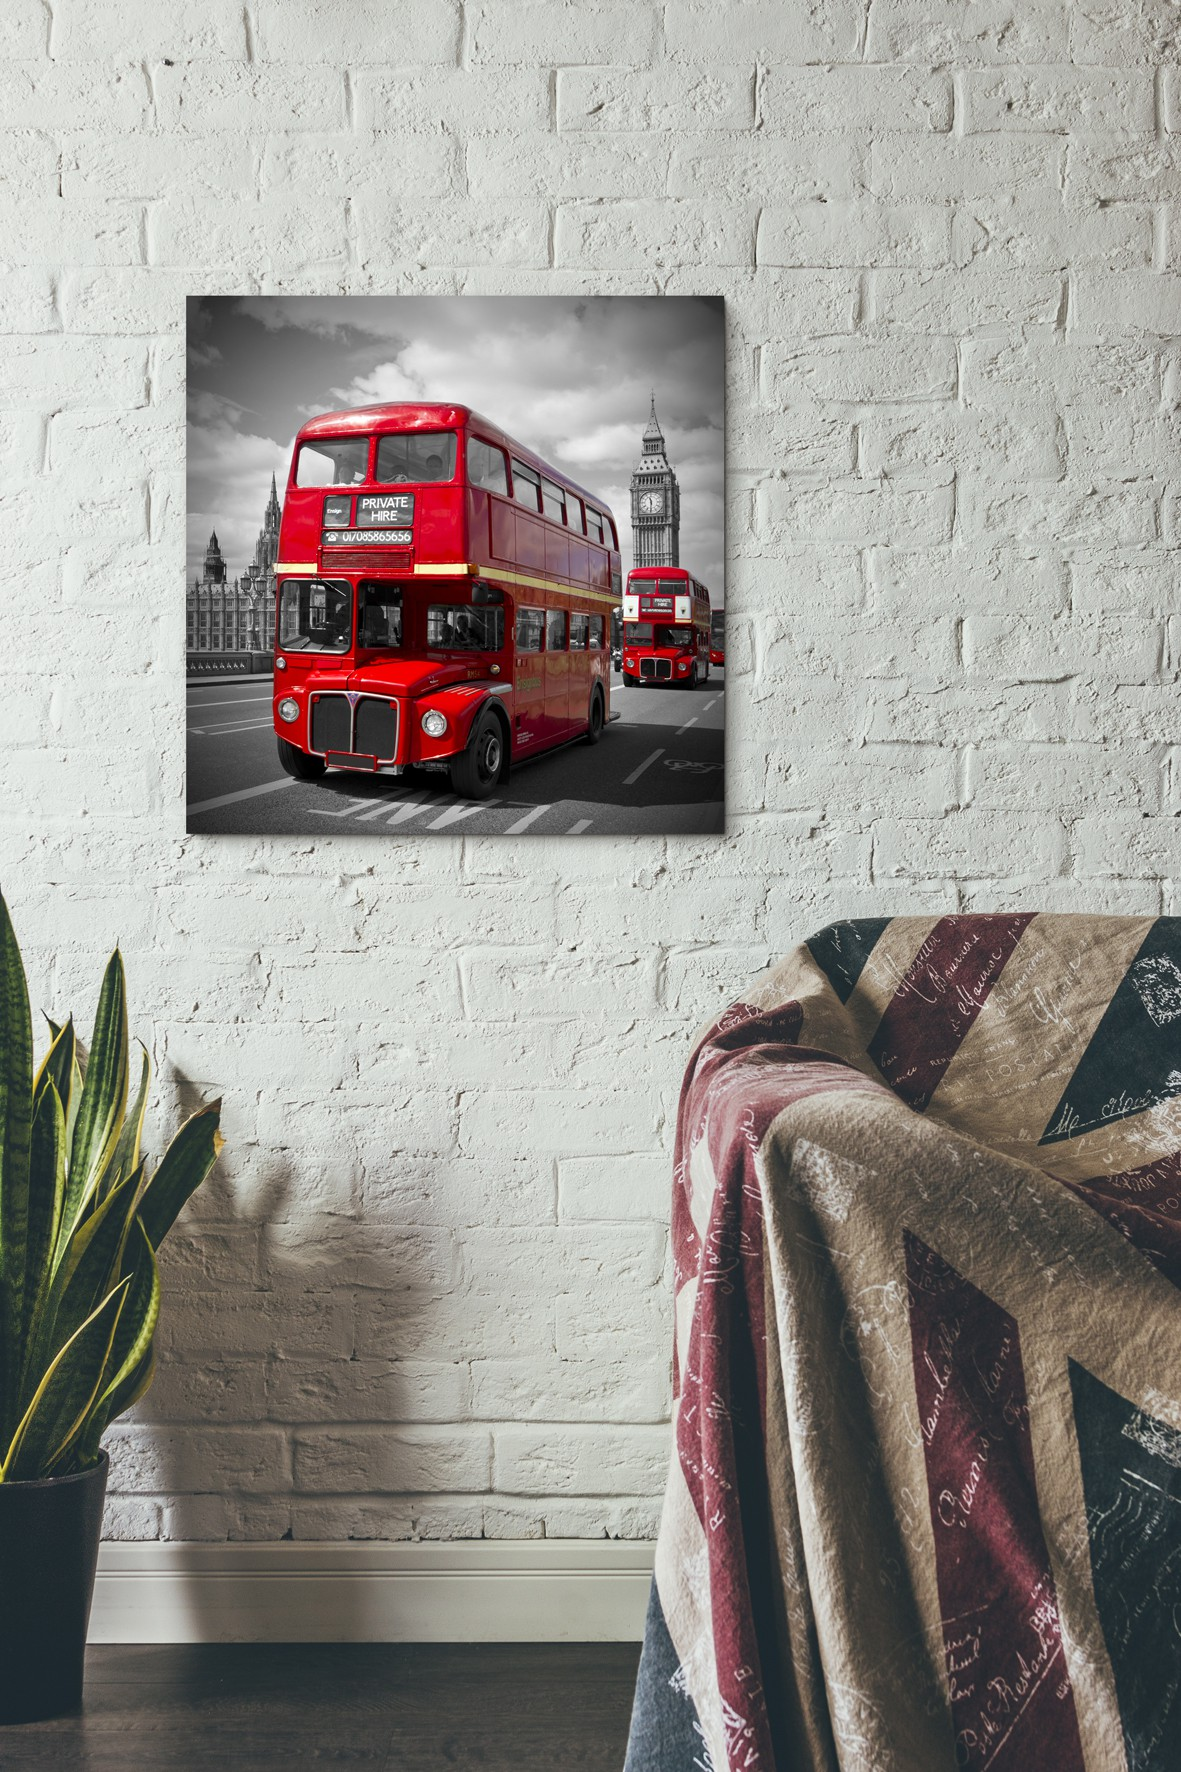 LONDON Red Buses On Westminster Bridge - Pixels.com Onlineshop